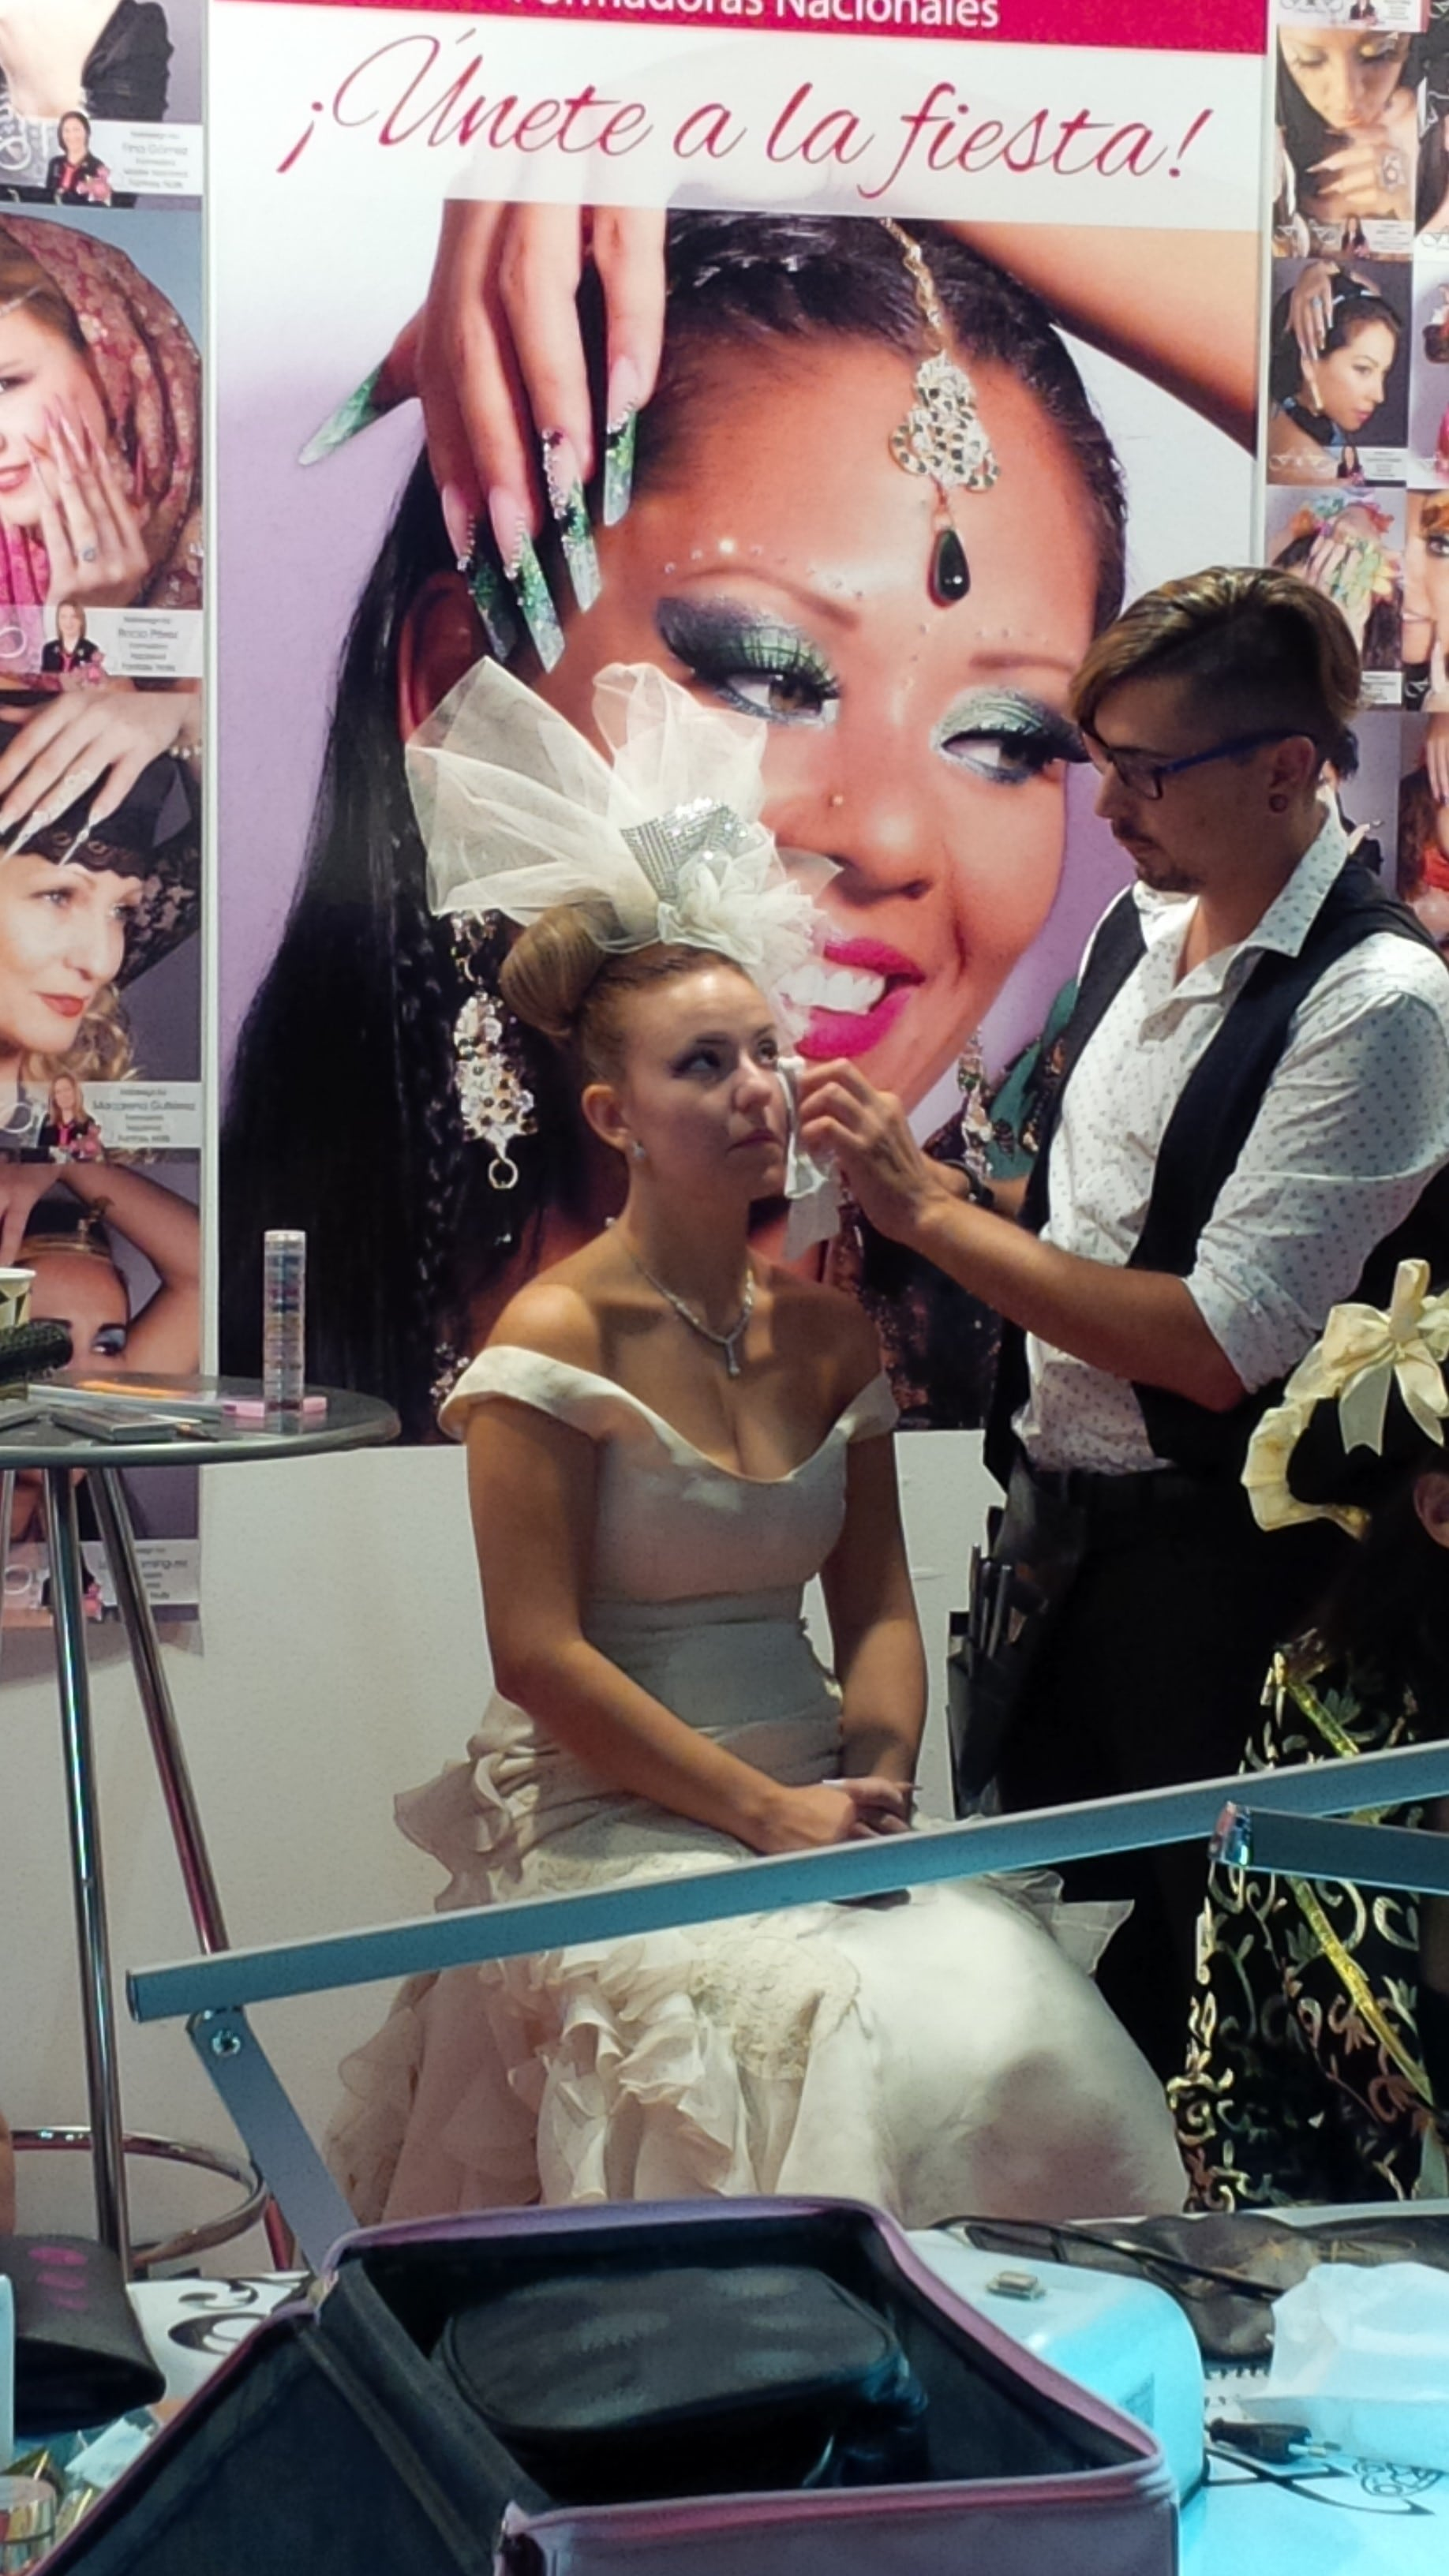 Salon look international – Madrid, Outubro 2014 (2)